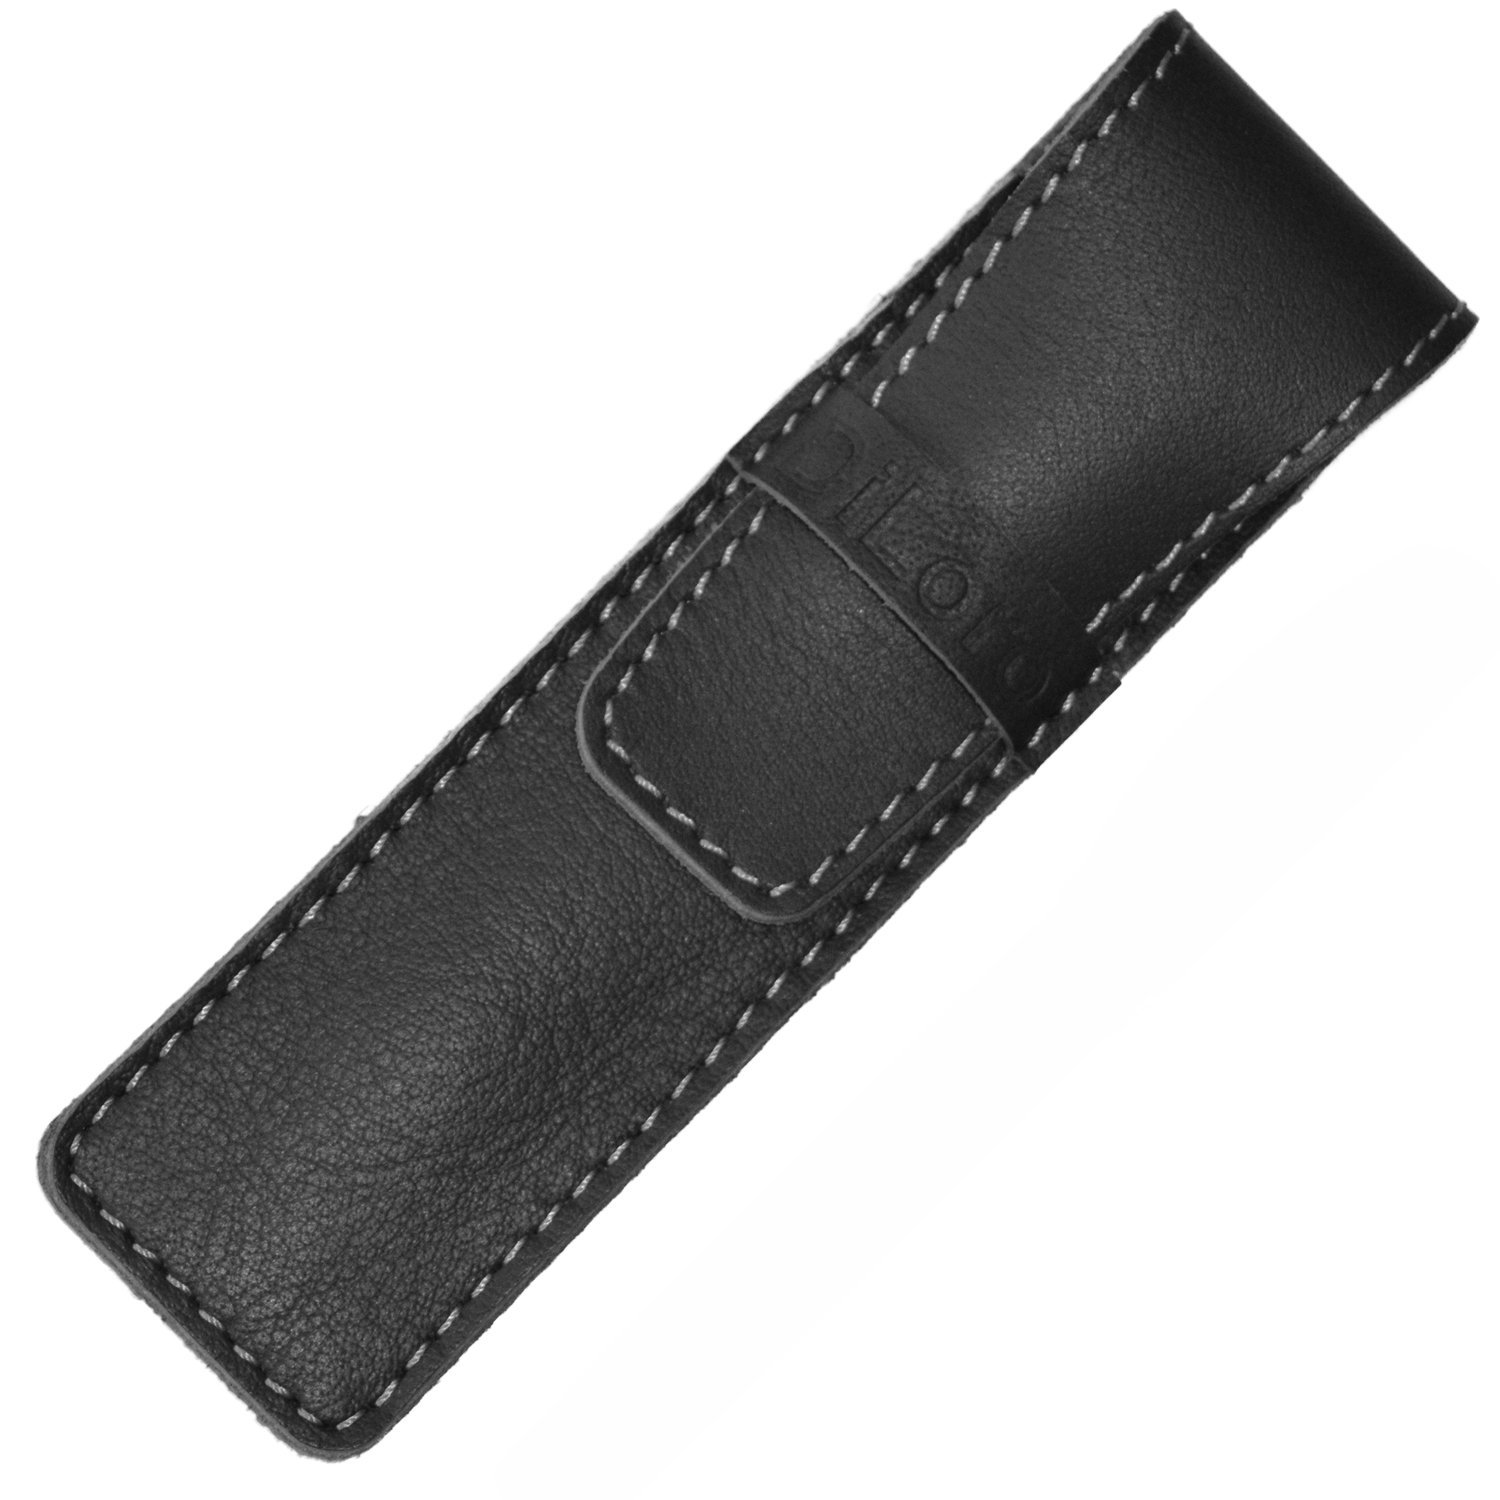 DiLoro Full Grain Top Quality Thick Buffalo Leather Single Pen Case Holder Pouch Black With Orange Stitches